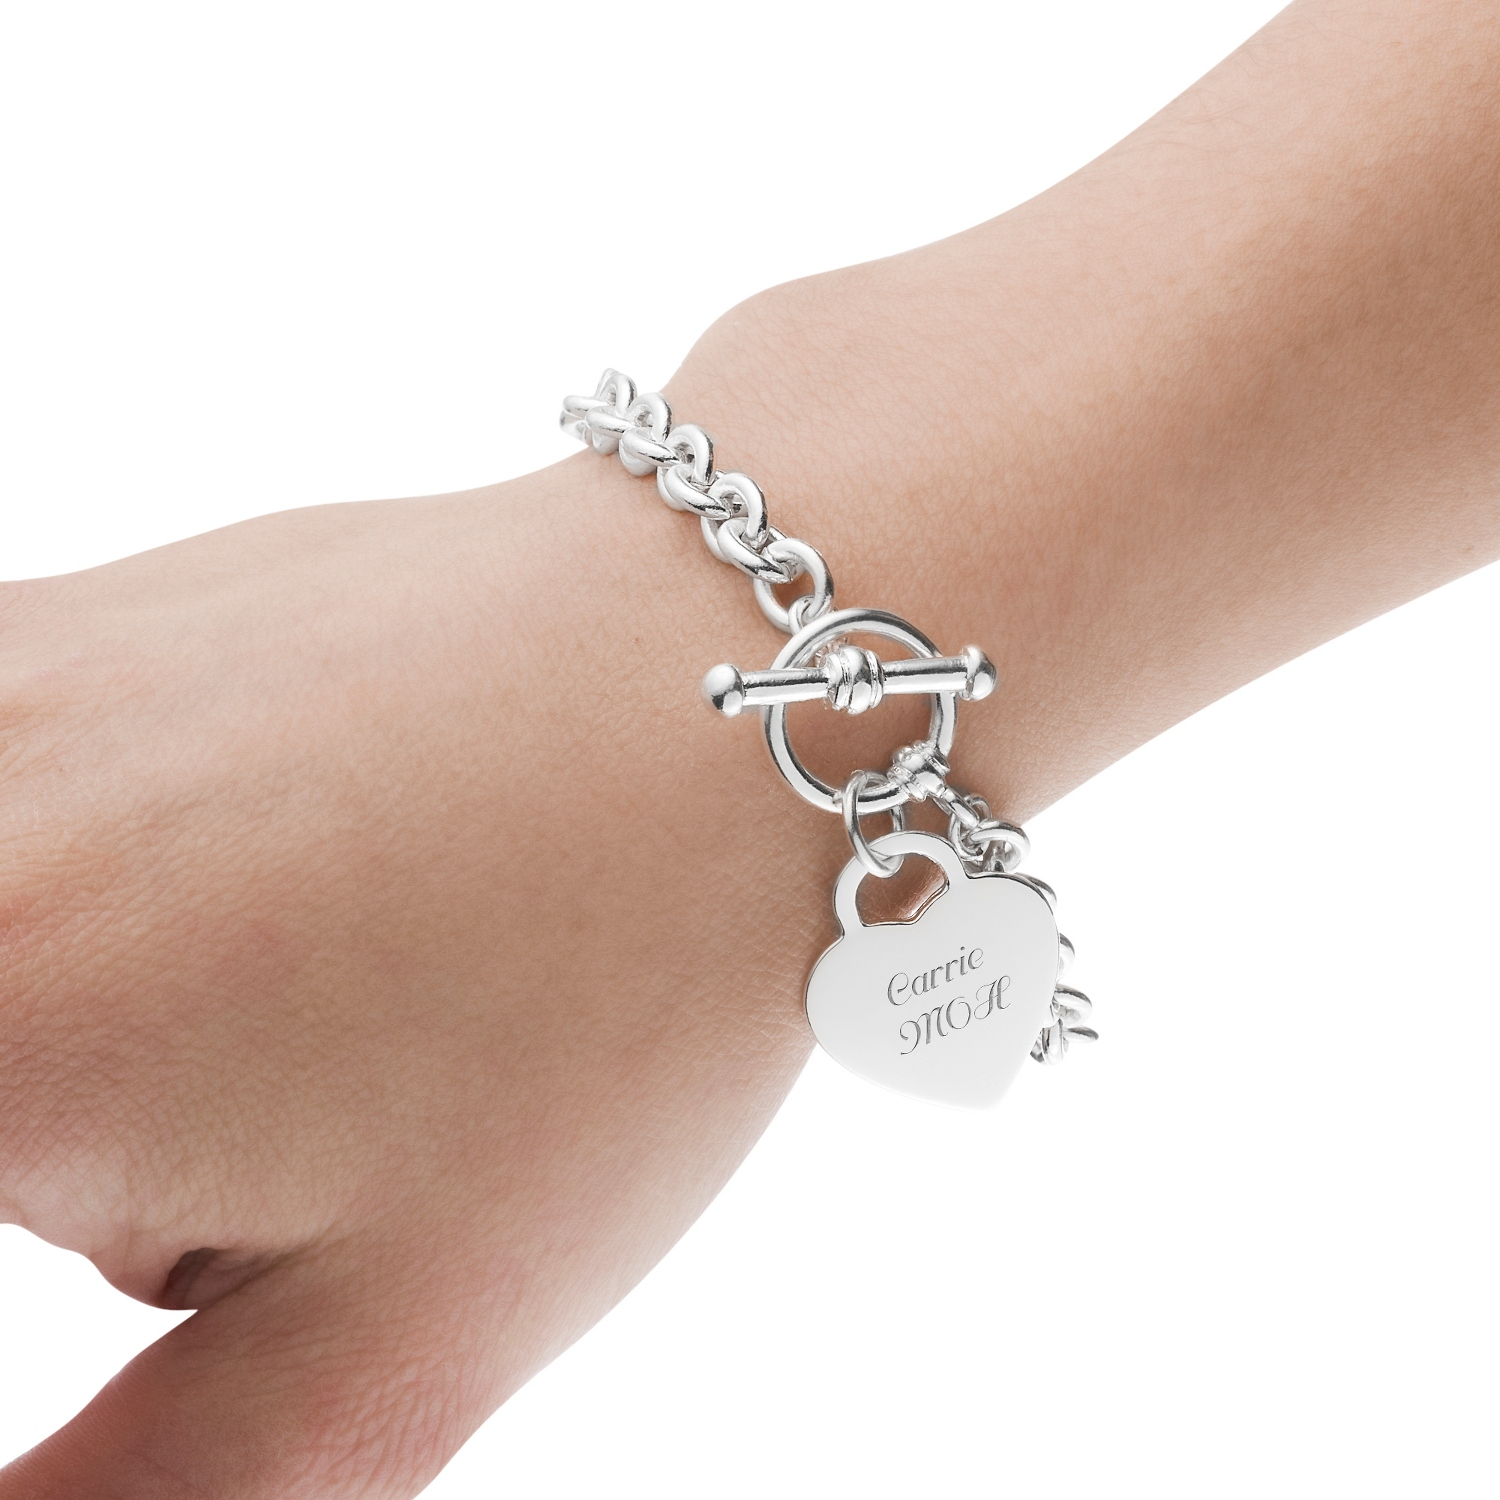 beads products bracelet collection fifth toggle silver g hand the d second